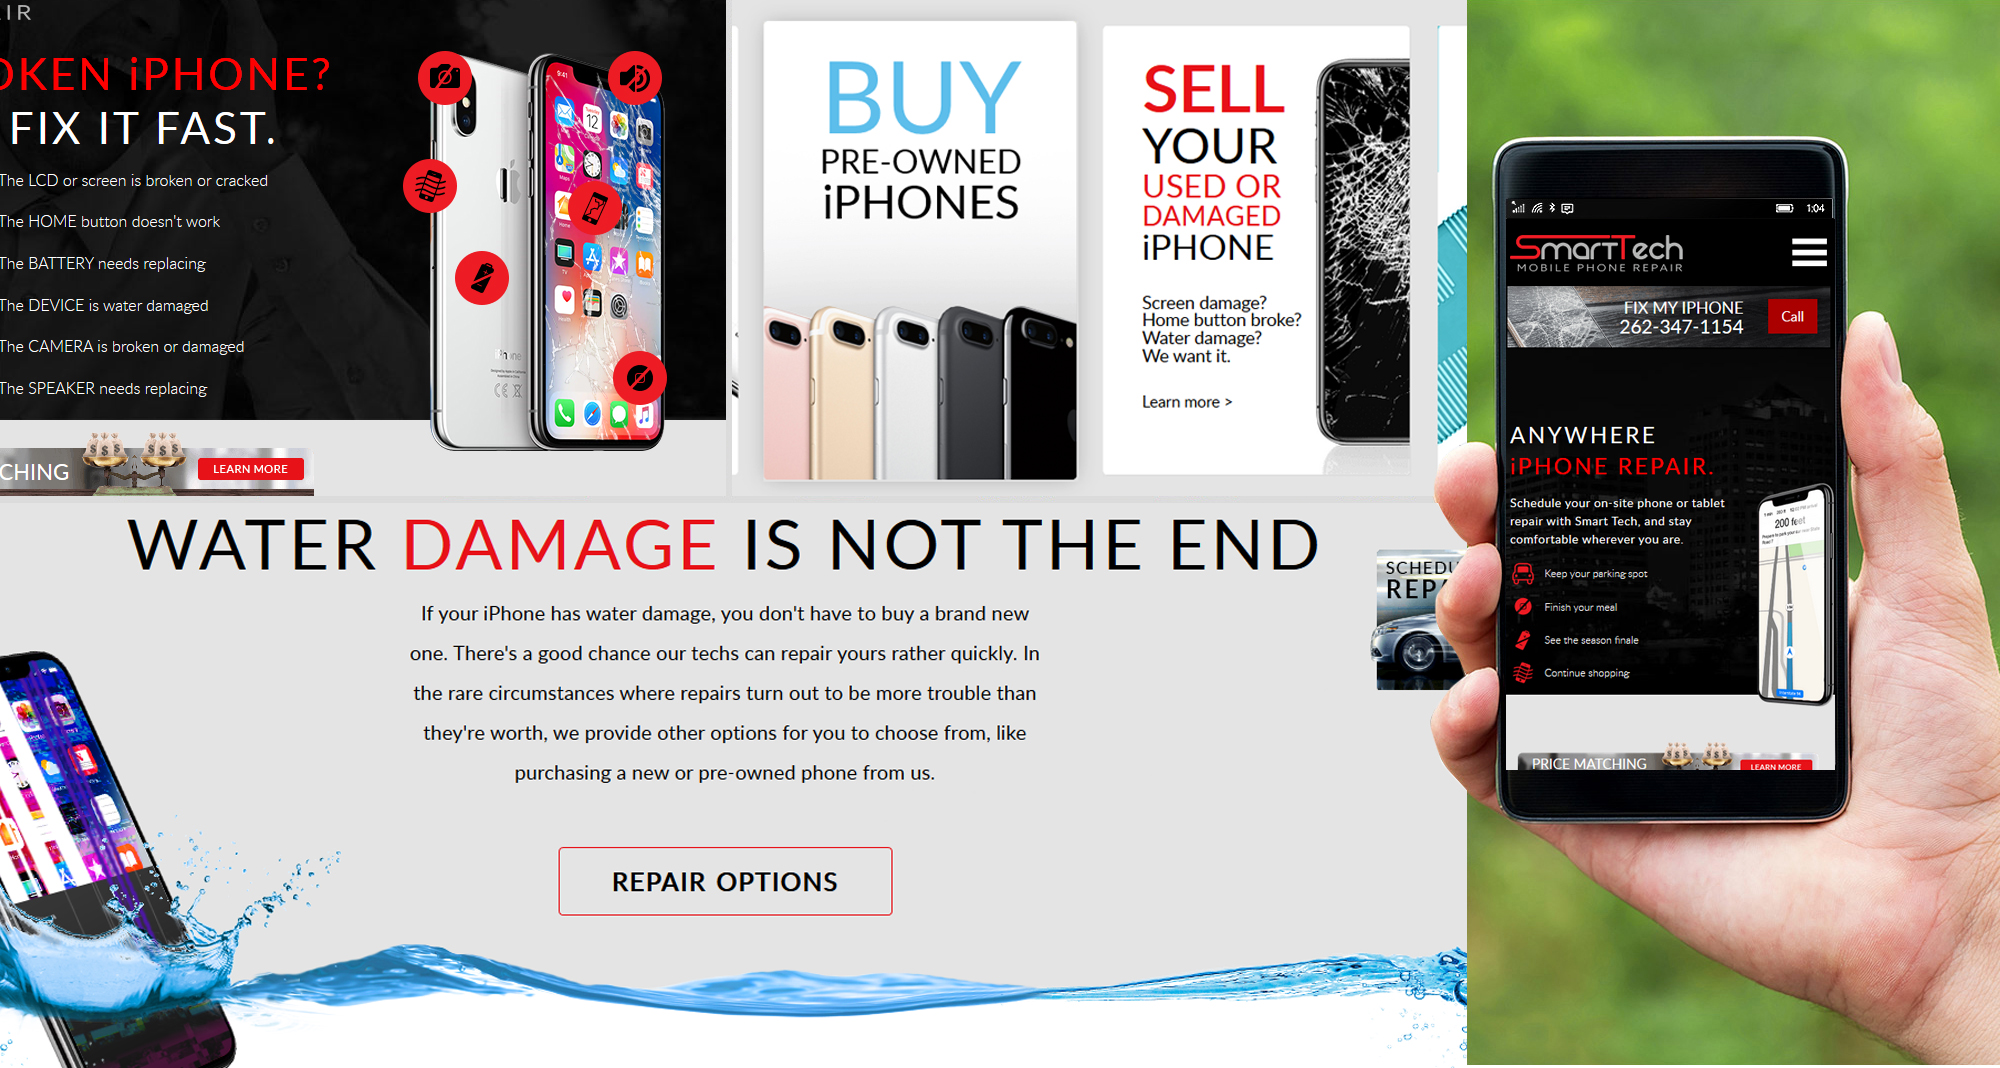 Milwaukee web marketing for Smart Tech Mobile Phone Repair